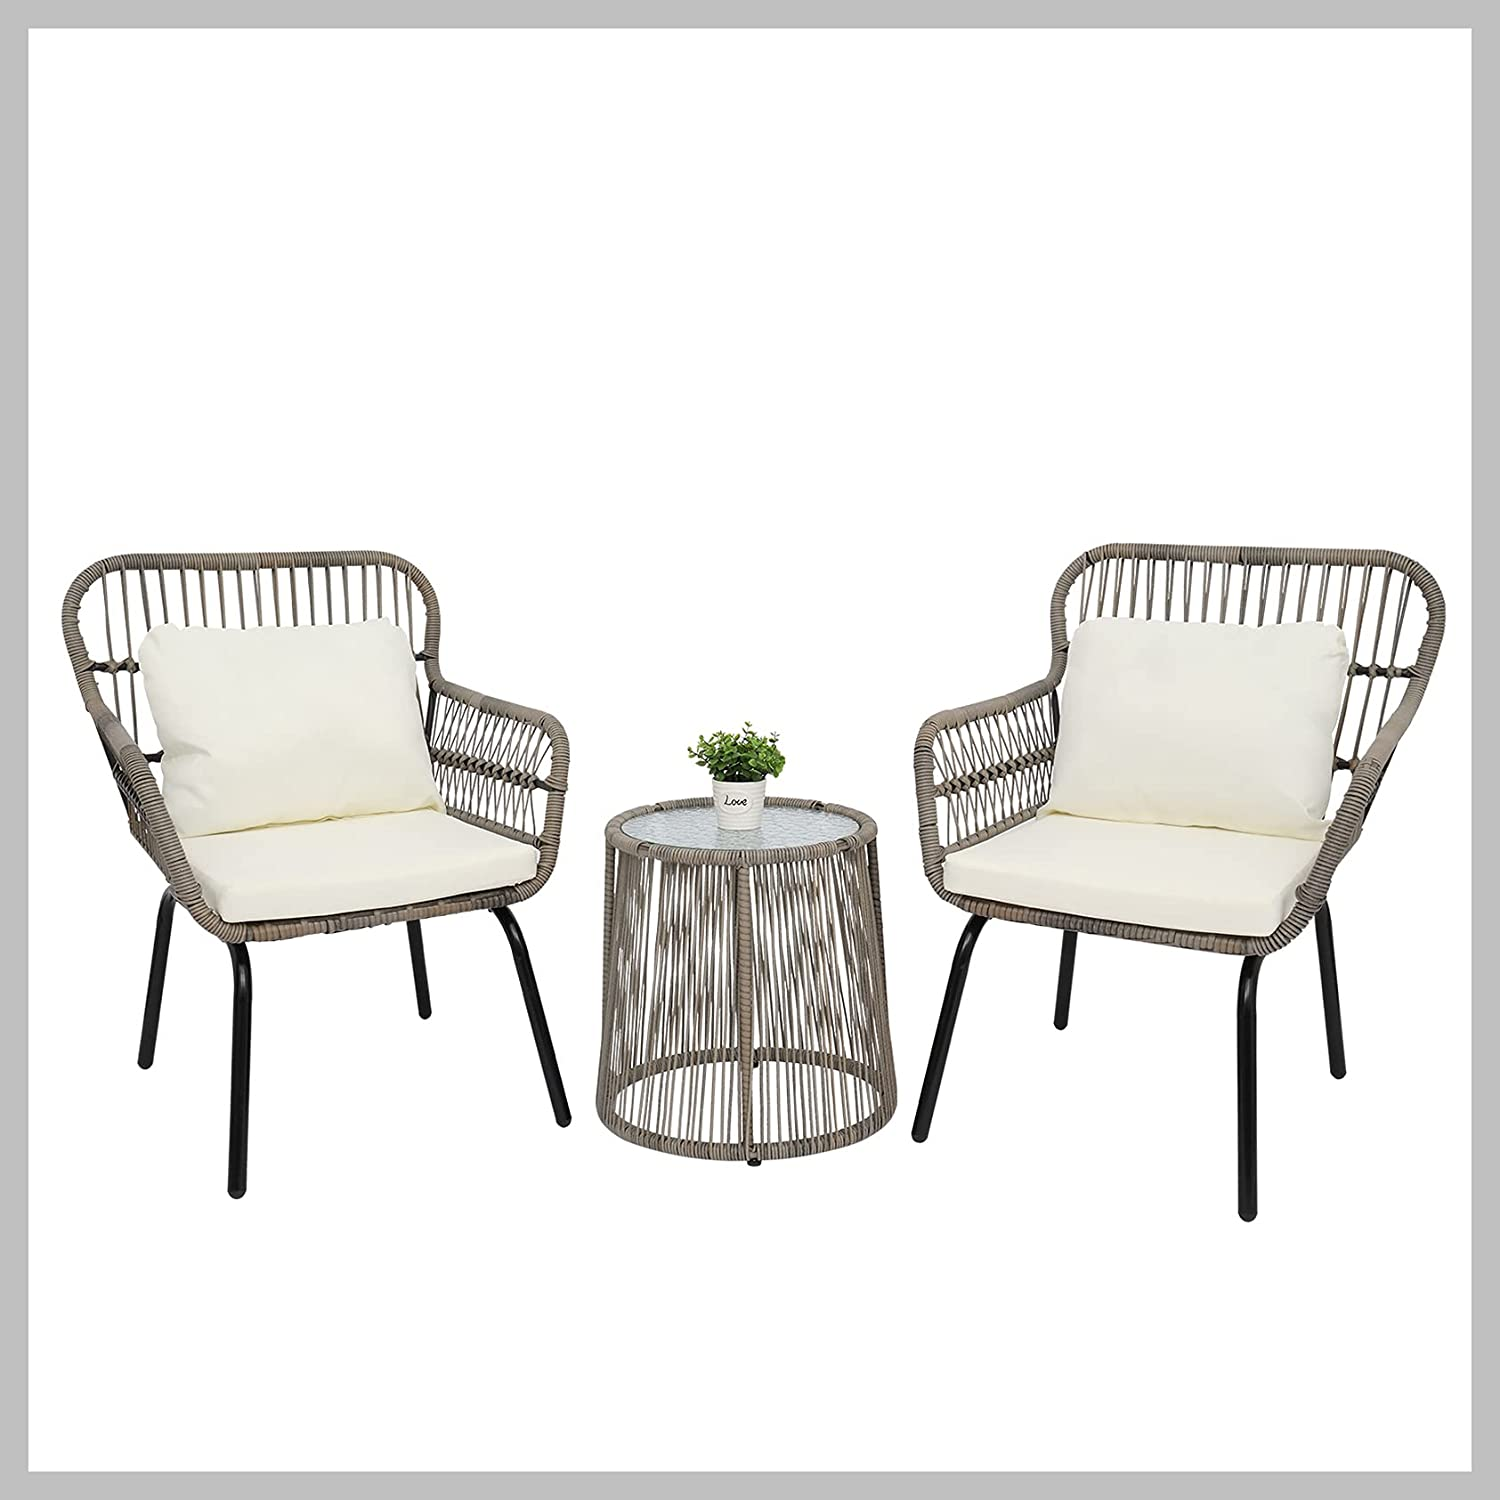 3-Piece price Patio Wicker Conversation Bistro 2 with Chairs Set Gla Long-awaited